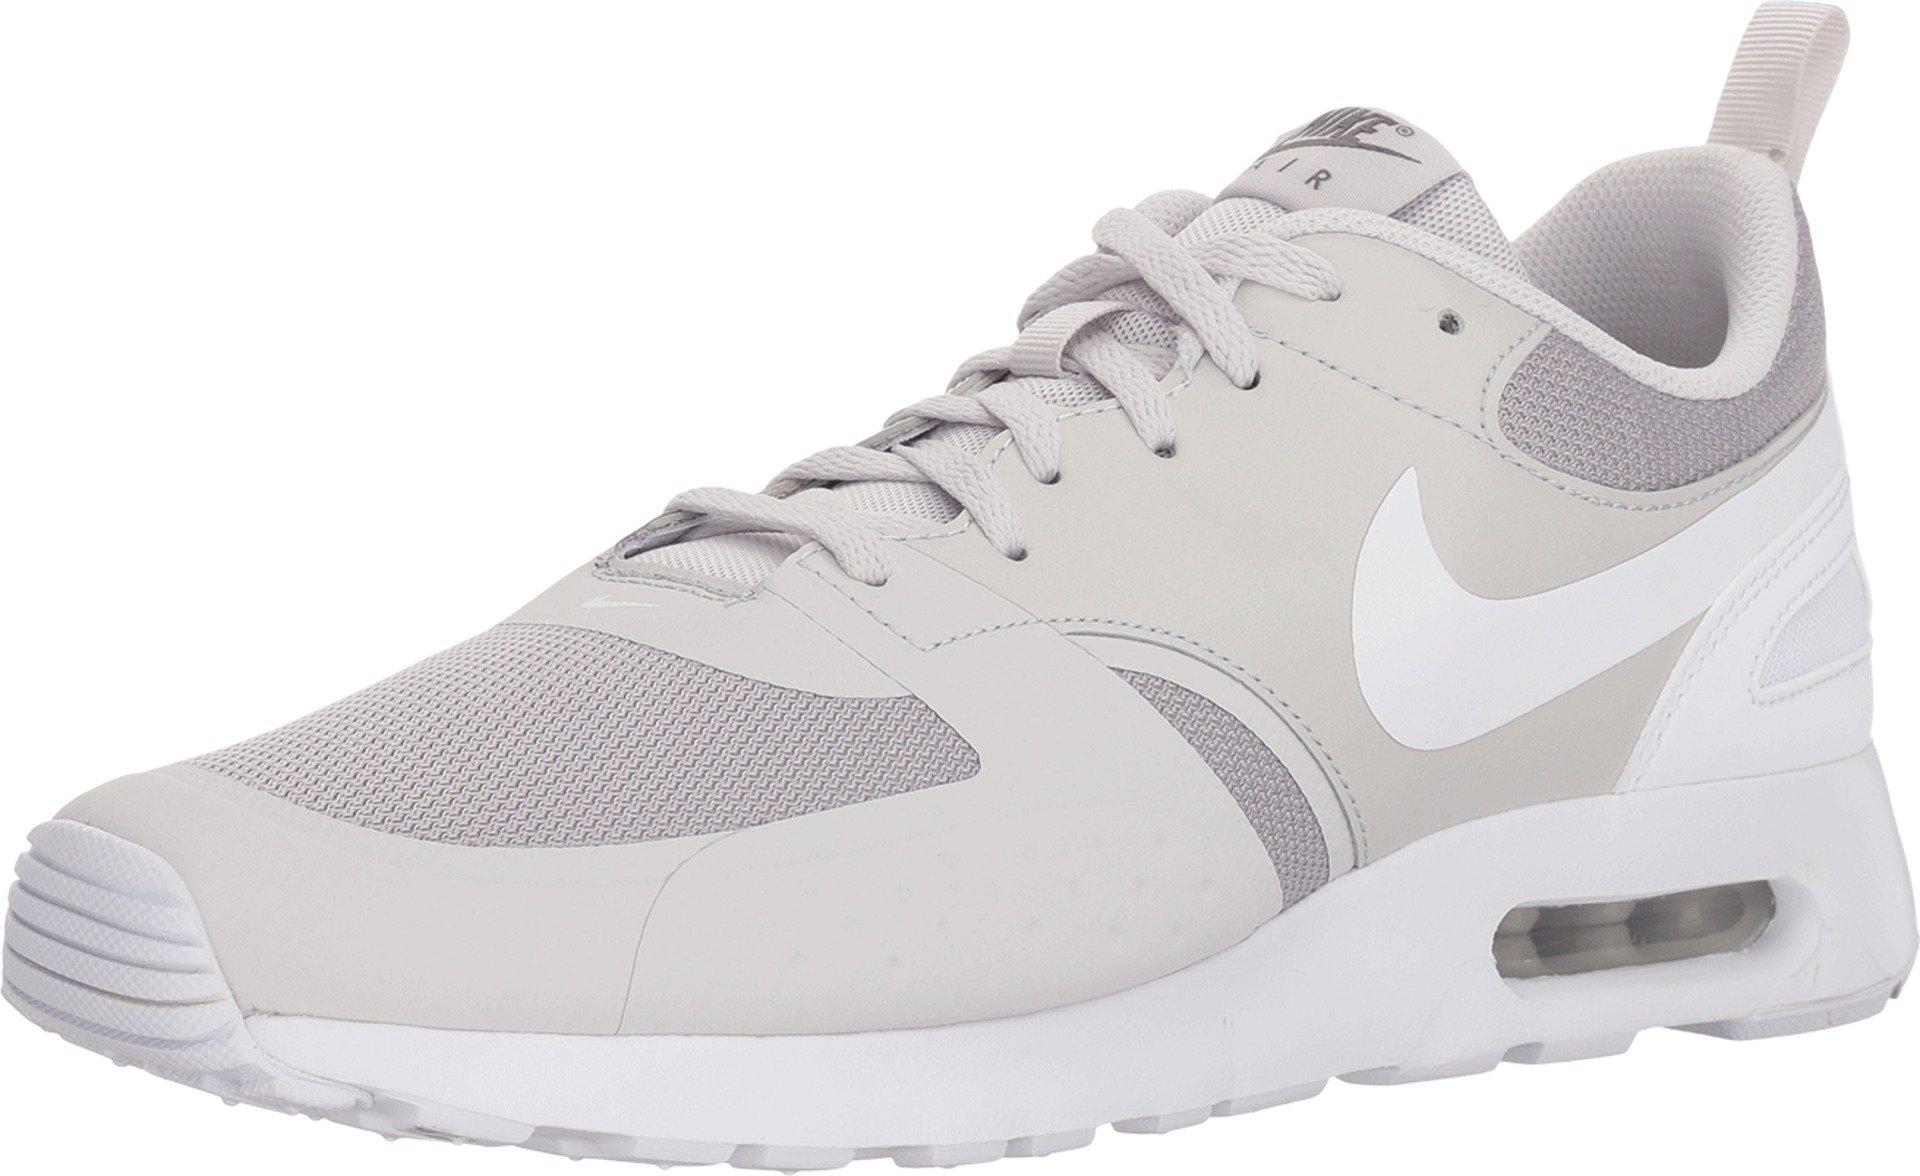 Nike Men's Air Max Vision Running Shoes, Vast GreyWhite Atmosphere Grey Gunsmoke, 11